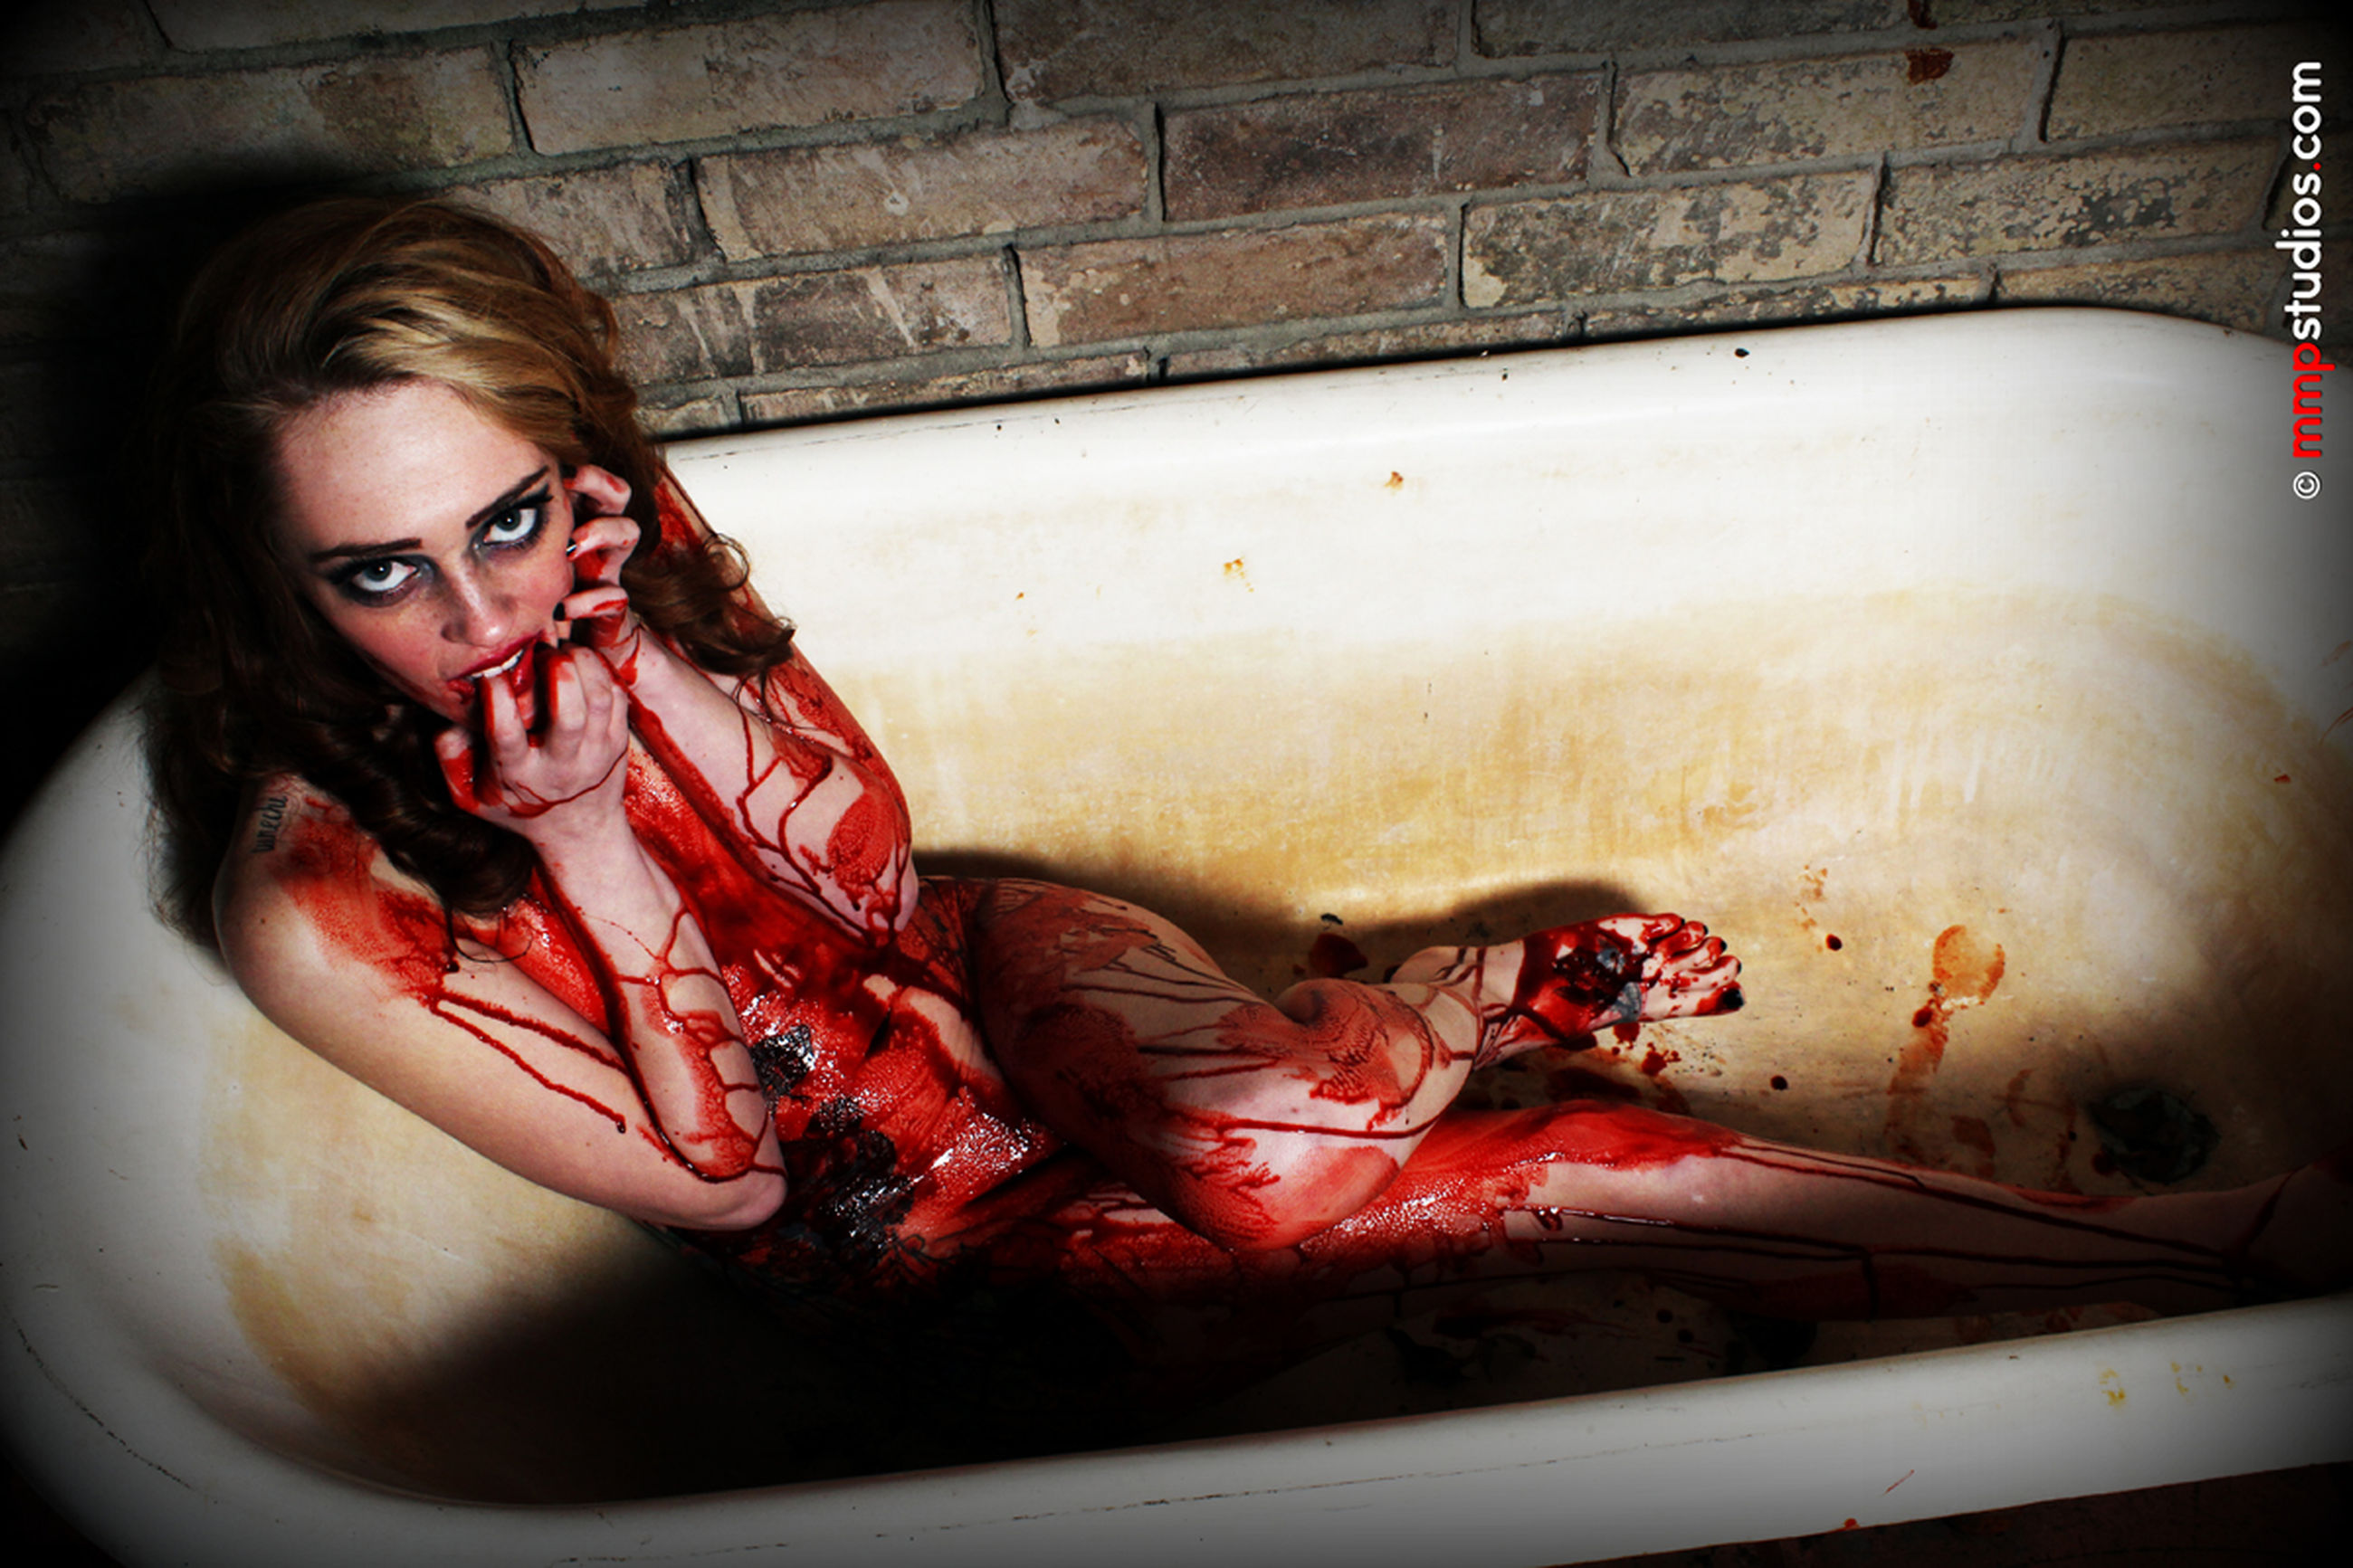 blood, looking at camera, young adult, portrait, one person, indoors, young women, real people, women, lifestyles, make-up, red, fear, horror, headshot, leisure activity, spooky, sitting, aggression, human blood